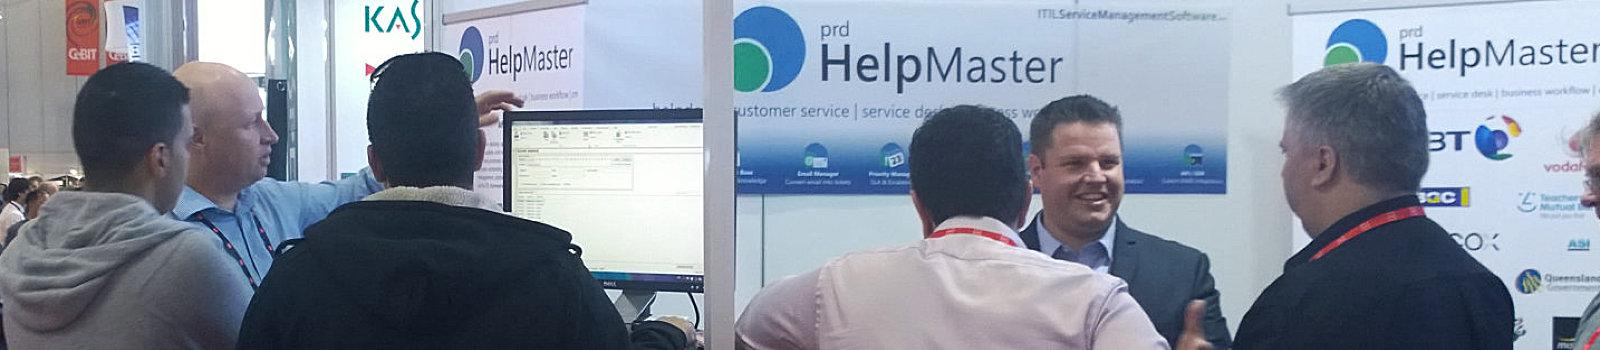 ITSM Software at CeBIT Sydney